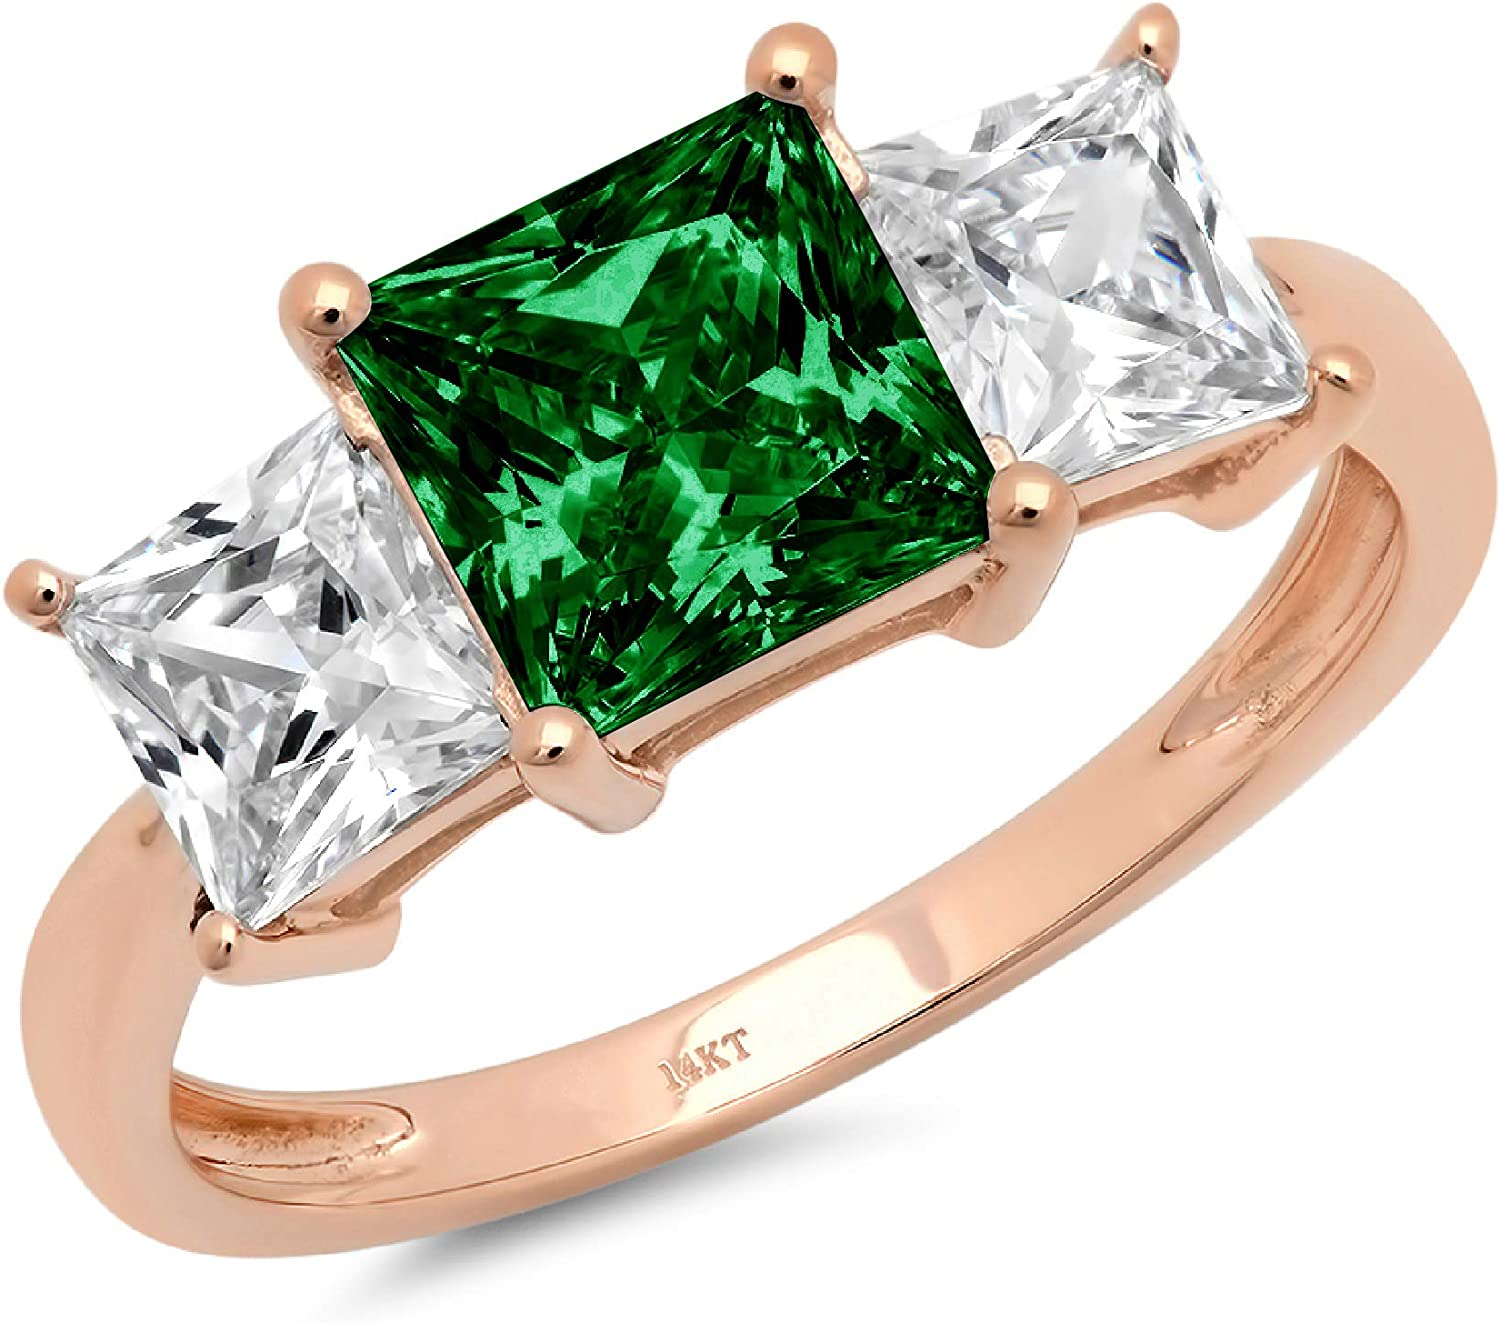 2.94ct Brilliant Princess Cut 3 Stone Solitaire with Accent Flawless Ideal VVS1 Simulated CZ Green Emerald Engagement Promise Statement Anniversary Bridal Wedding Designer Ring 14k Rose Gold